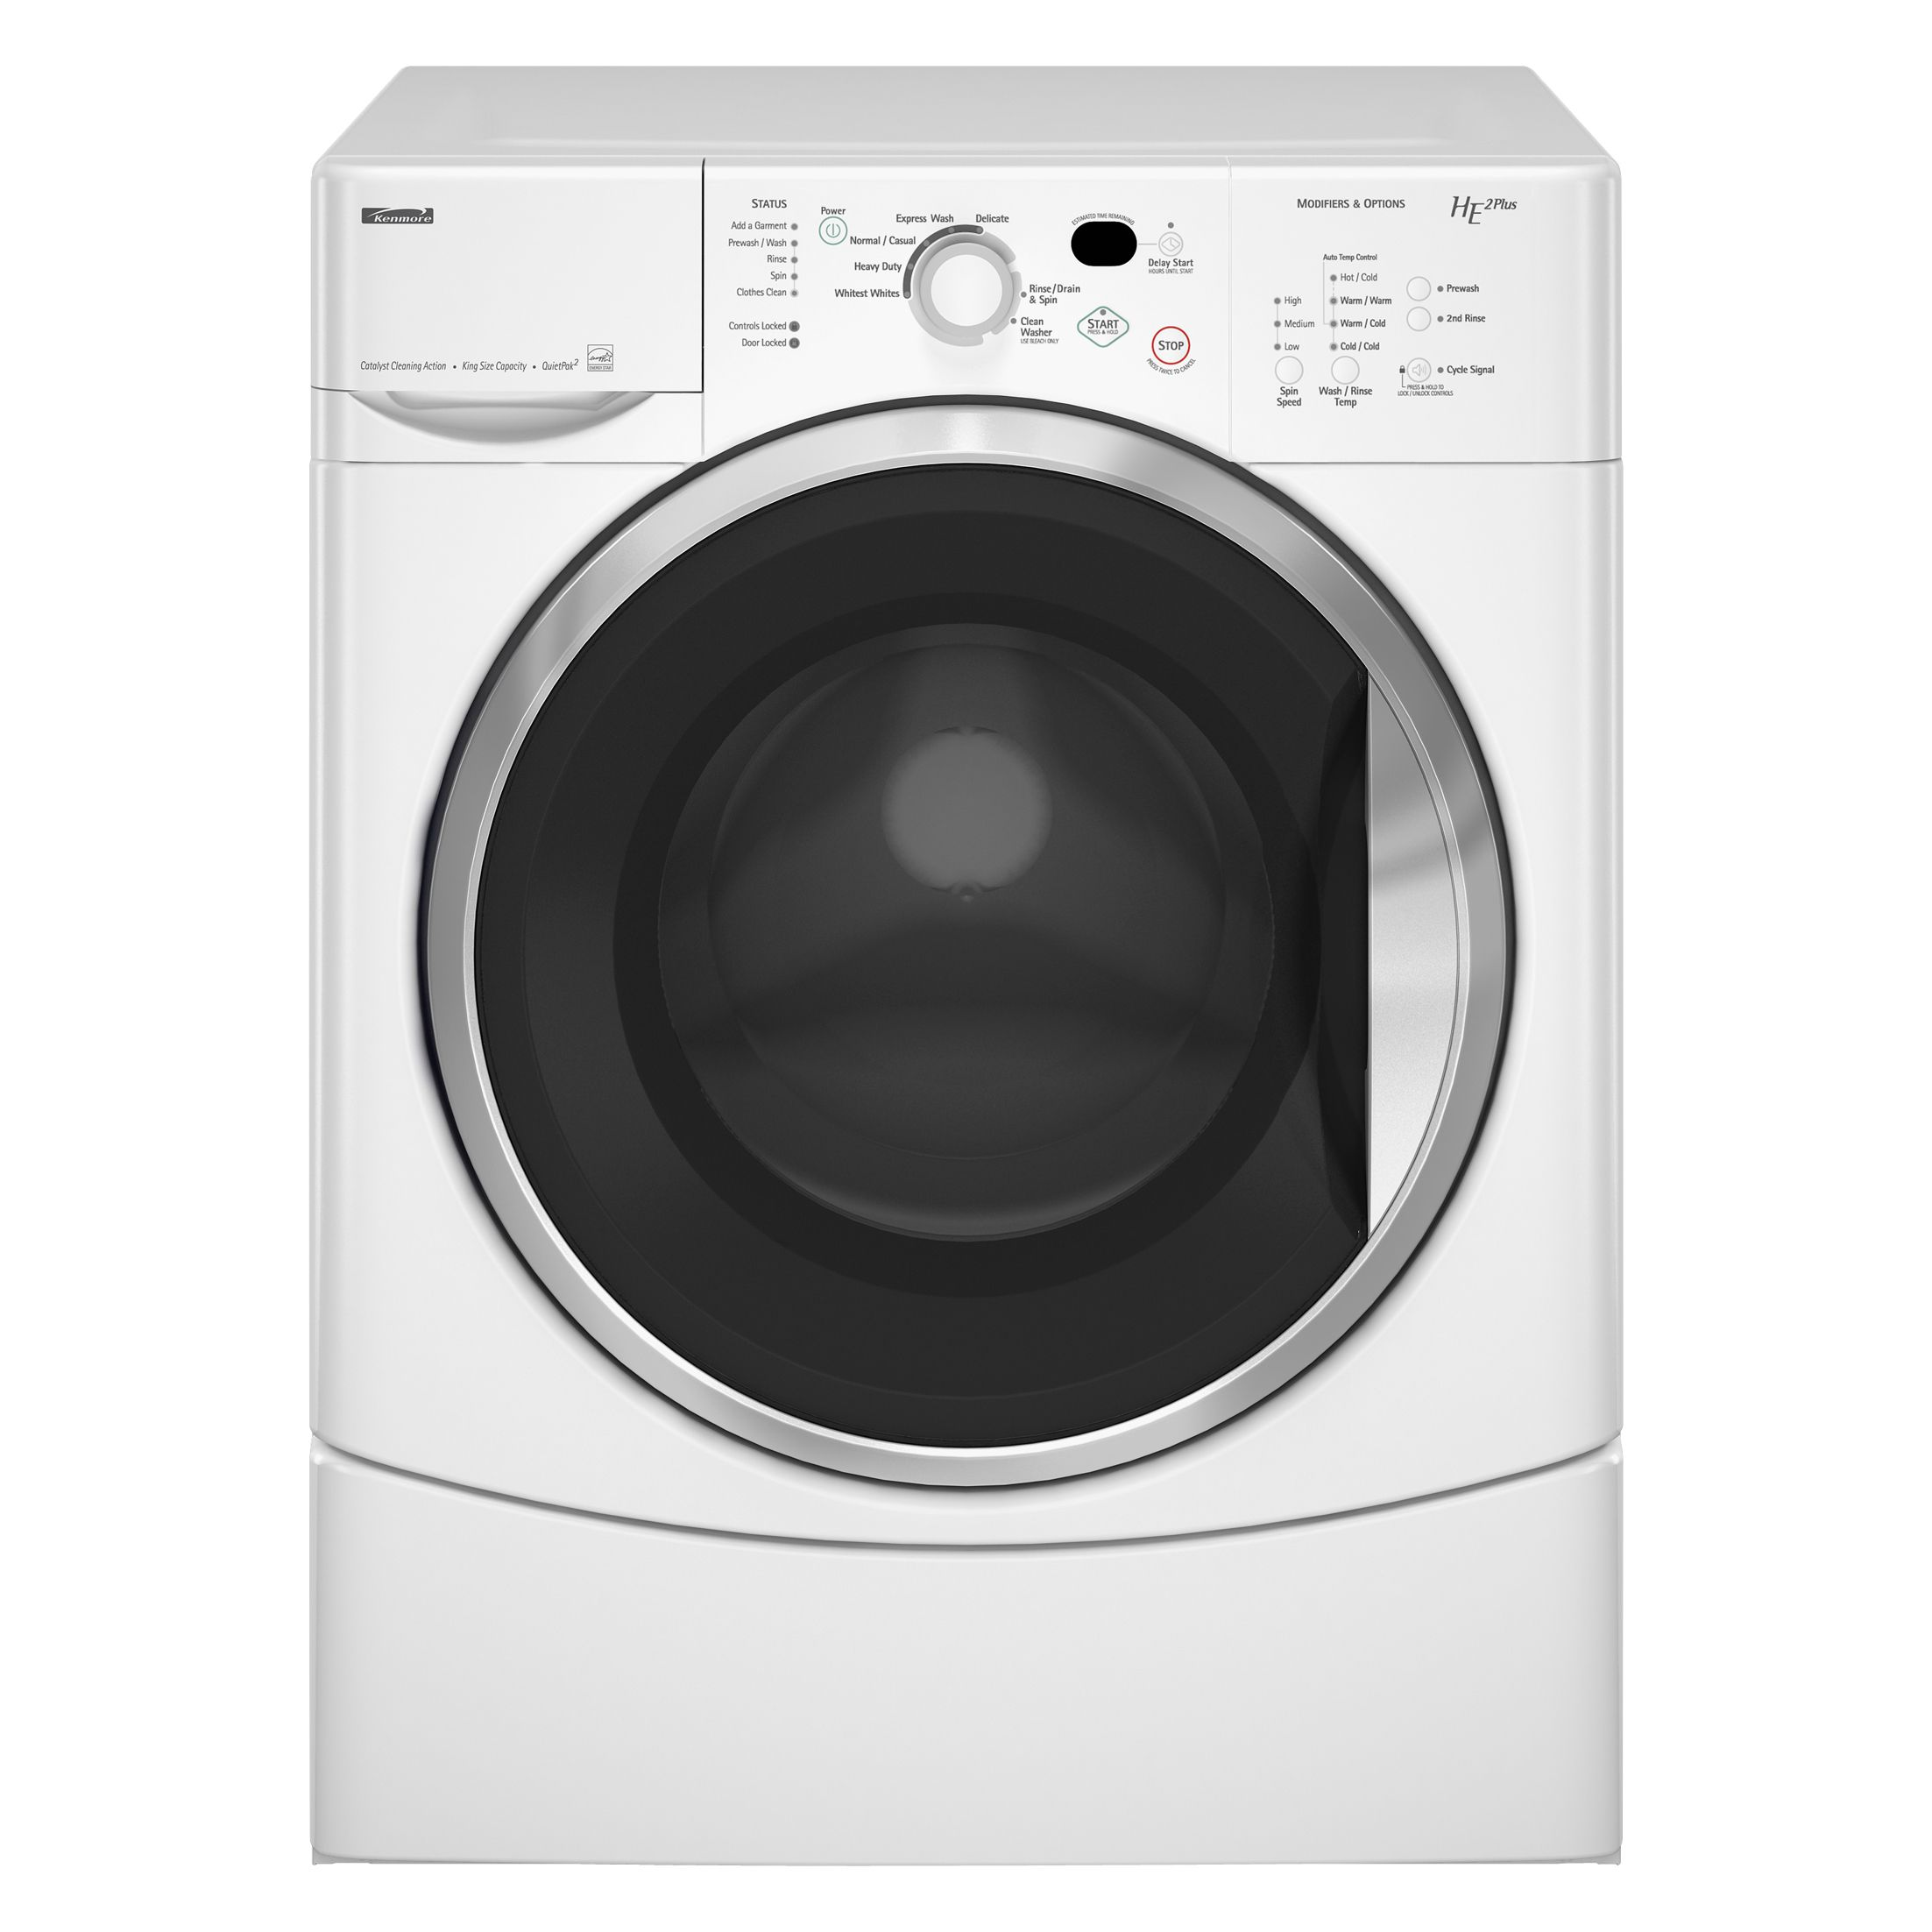 Sears Kenmore Washer And Dryer Kenmore - 4751 - HE2 Plus 3.6 cu. ft. Front-Load Super ...